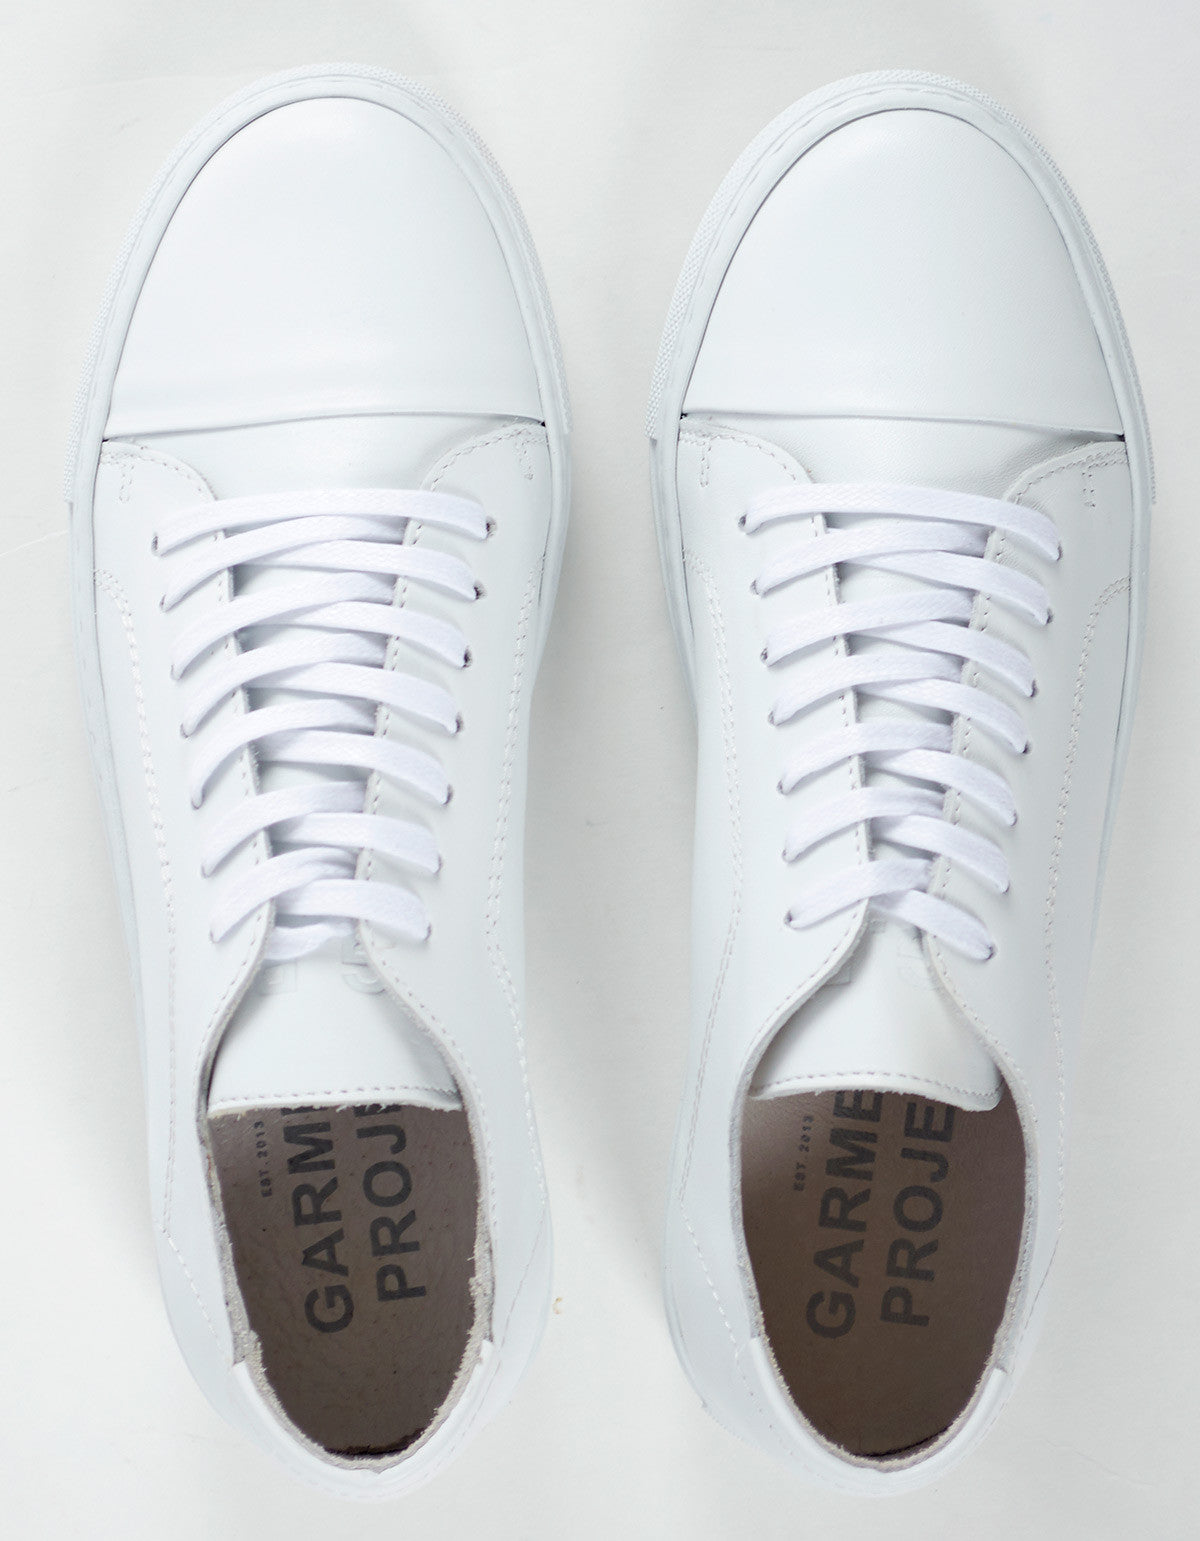 Garment Project Classic Lace Sneaker White - Still Life - 4